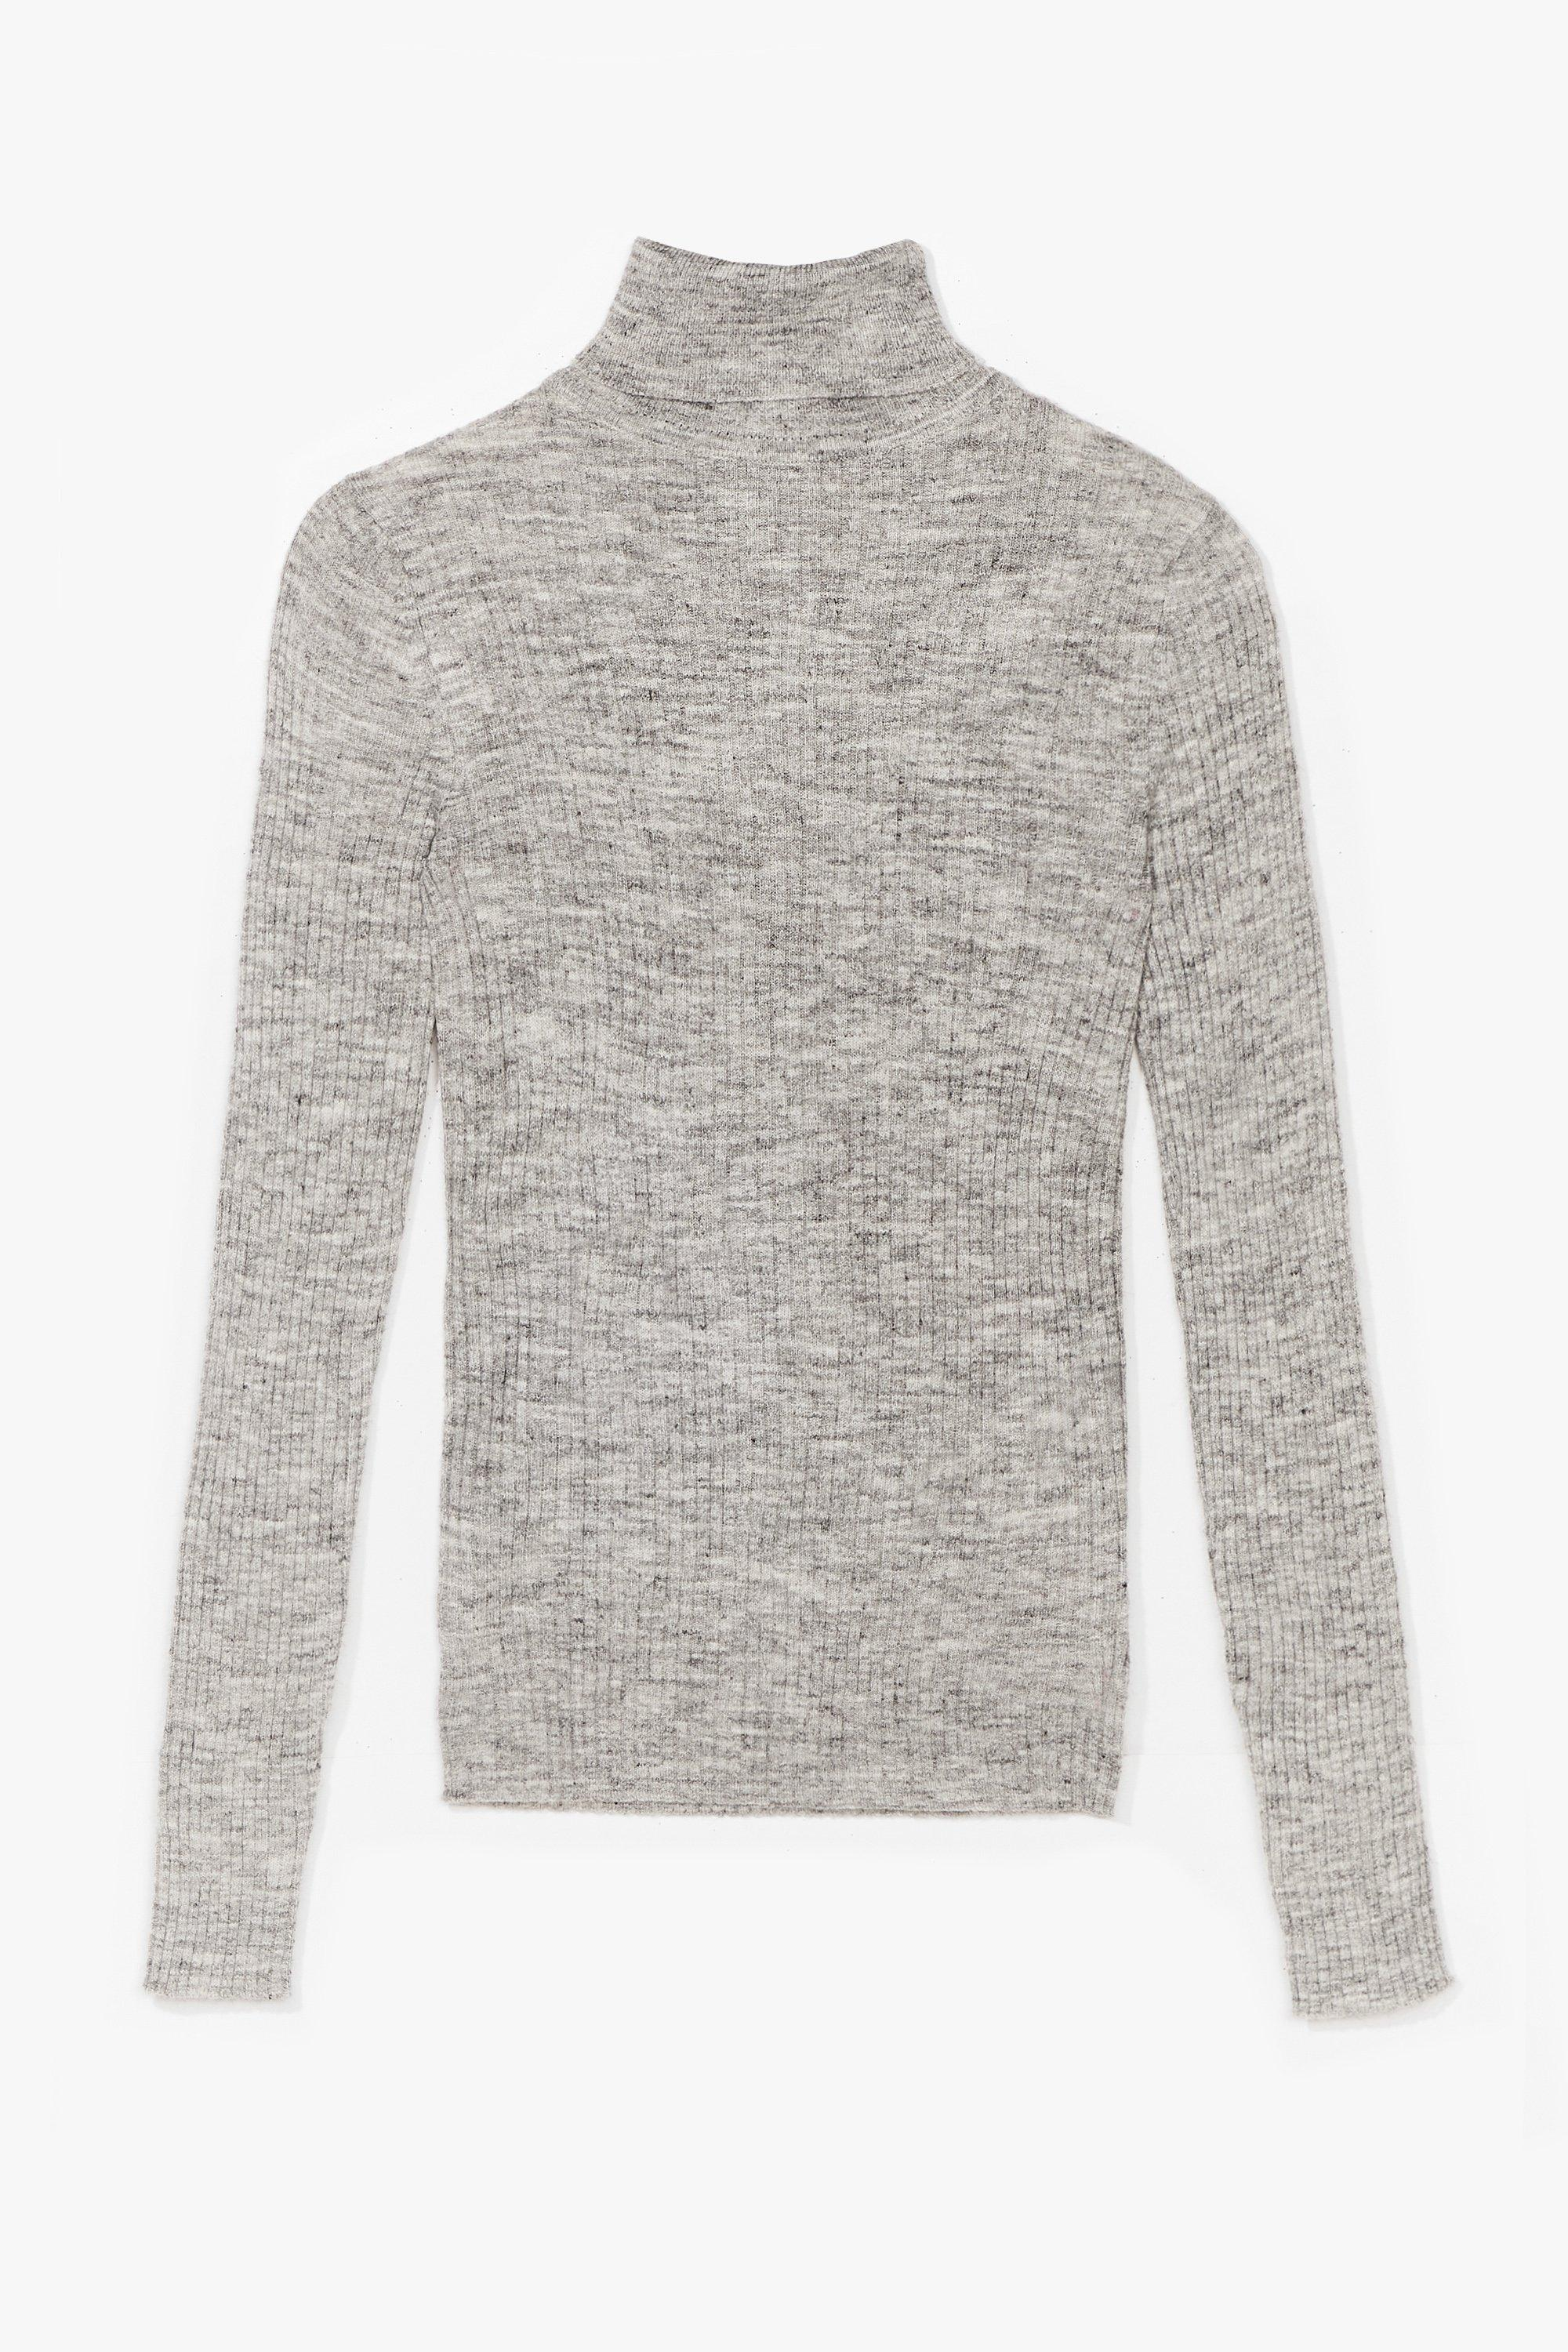 Image of Had Knit Up to Here Ribbed Turtleneck Sweater